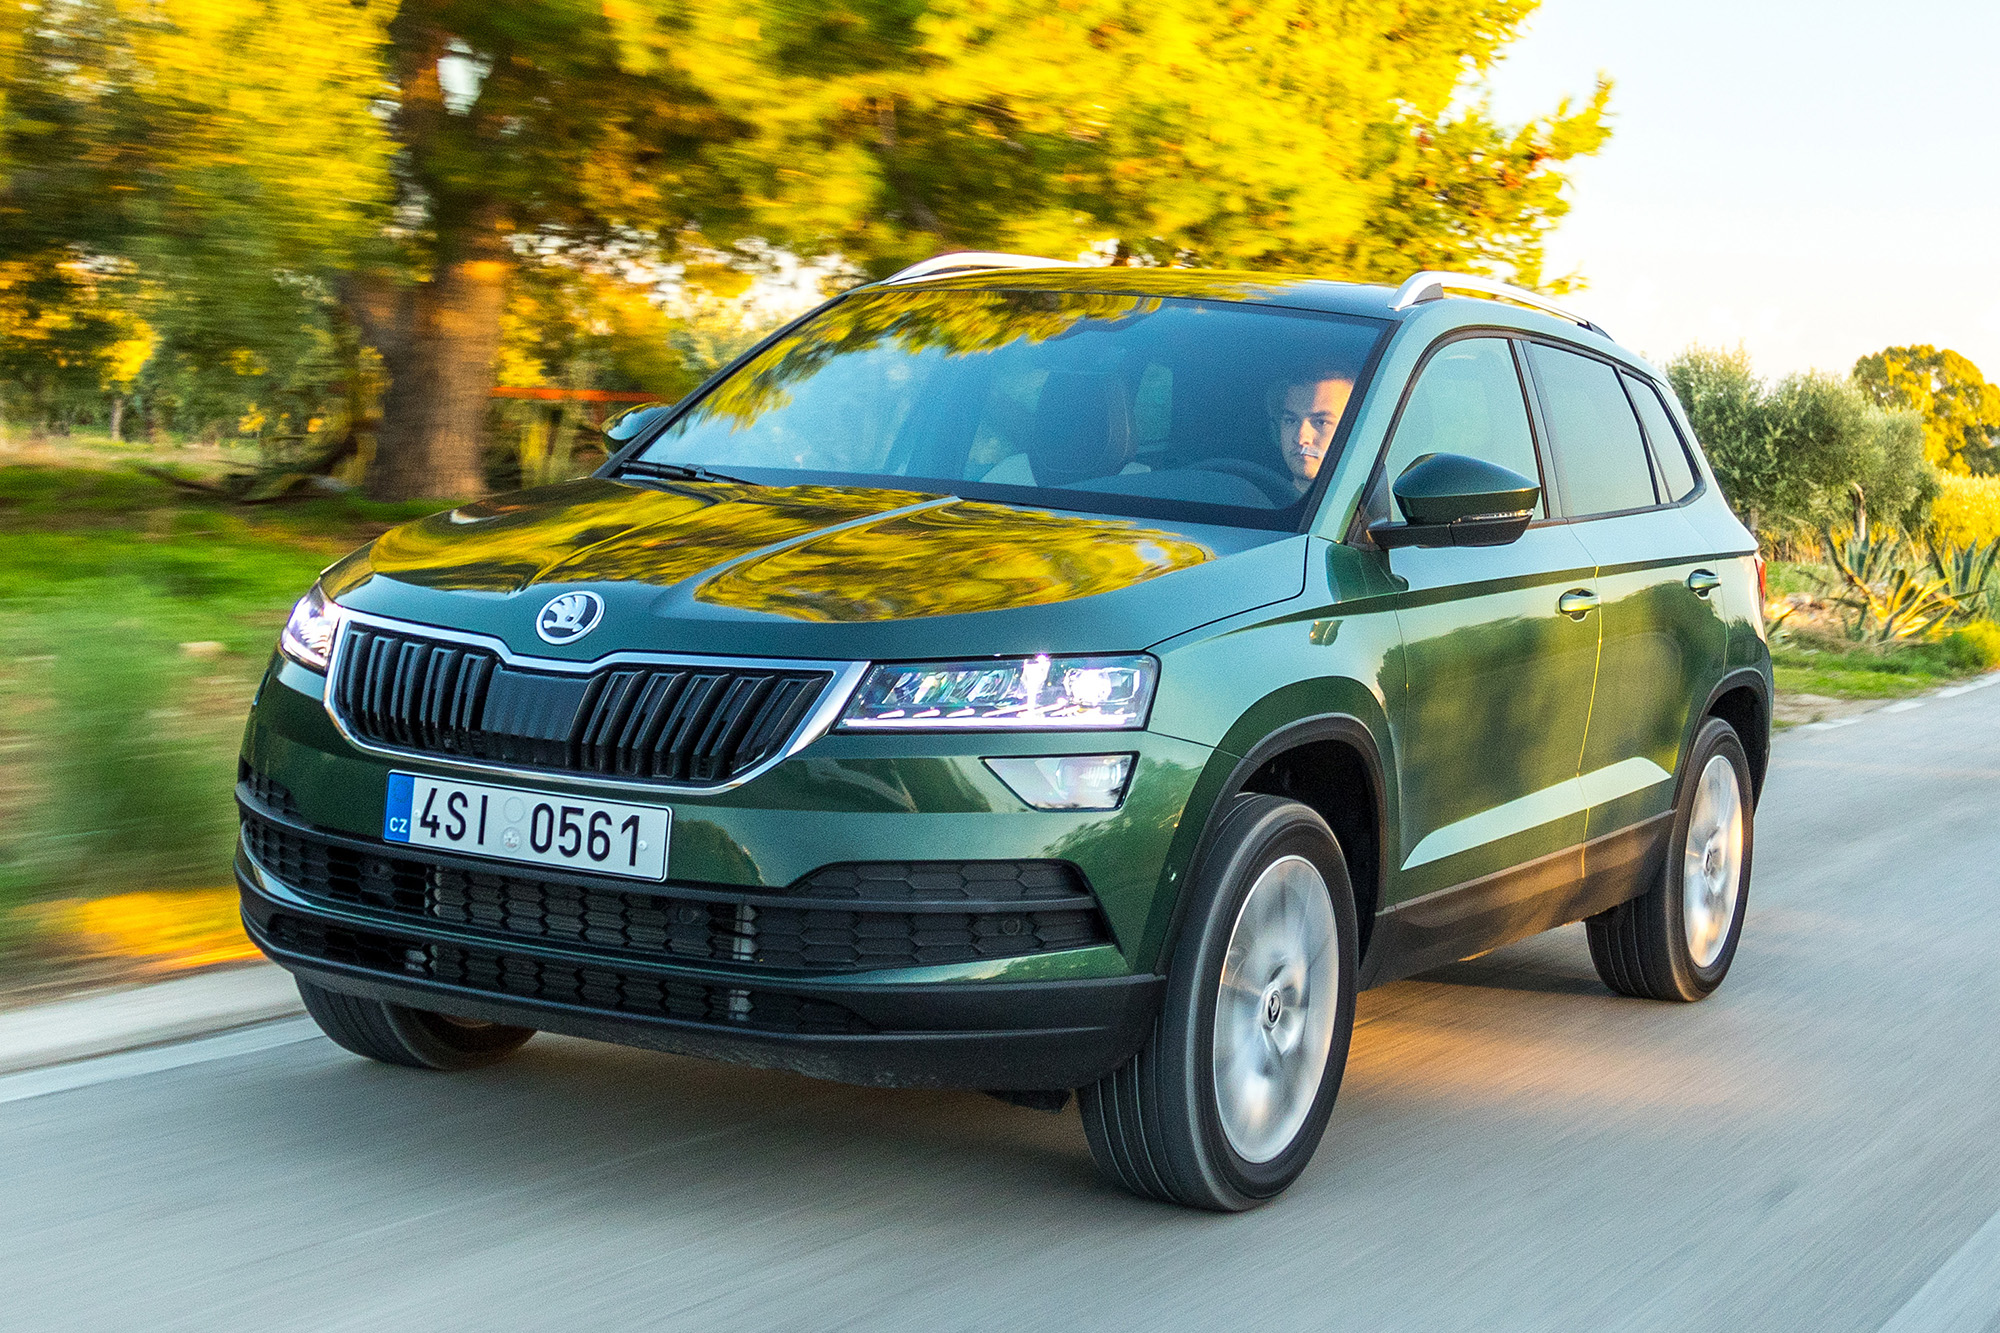 skoda karoq primo test su strada suv compatto di qualit i prezzi qn motori. Black Bedroom Furniture Sets. Home Design Ideas